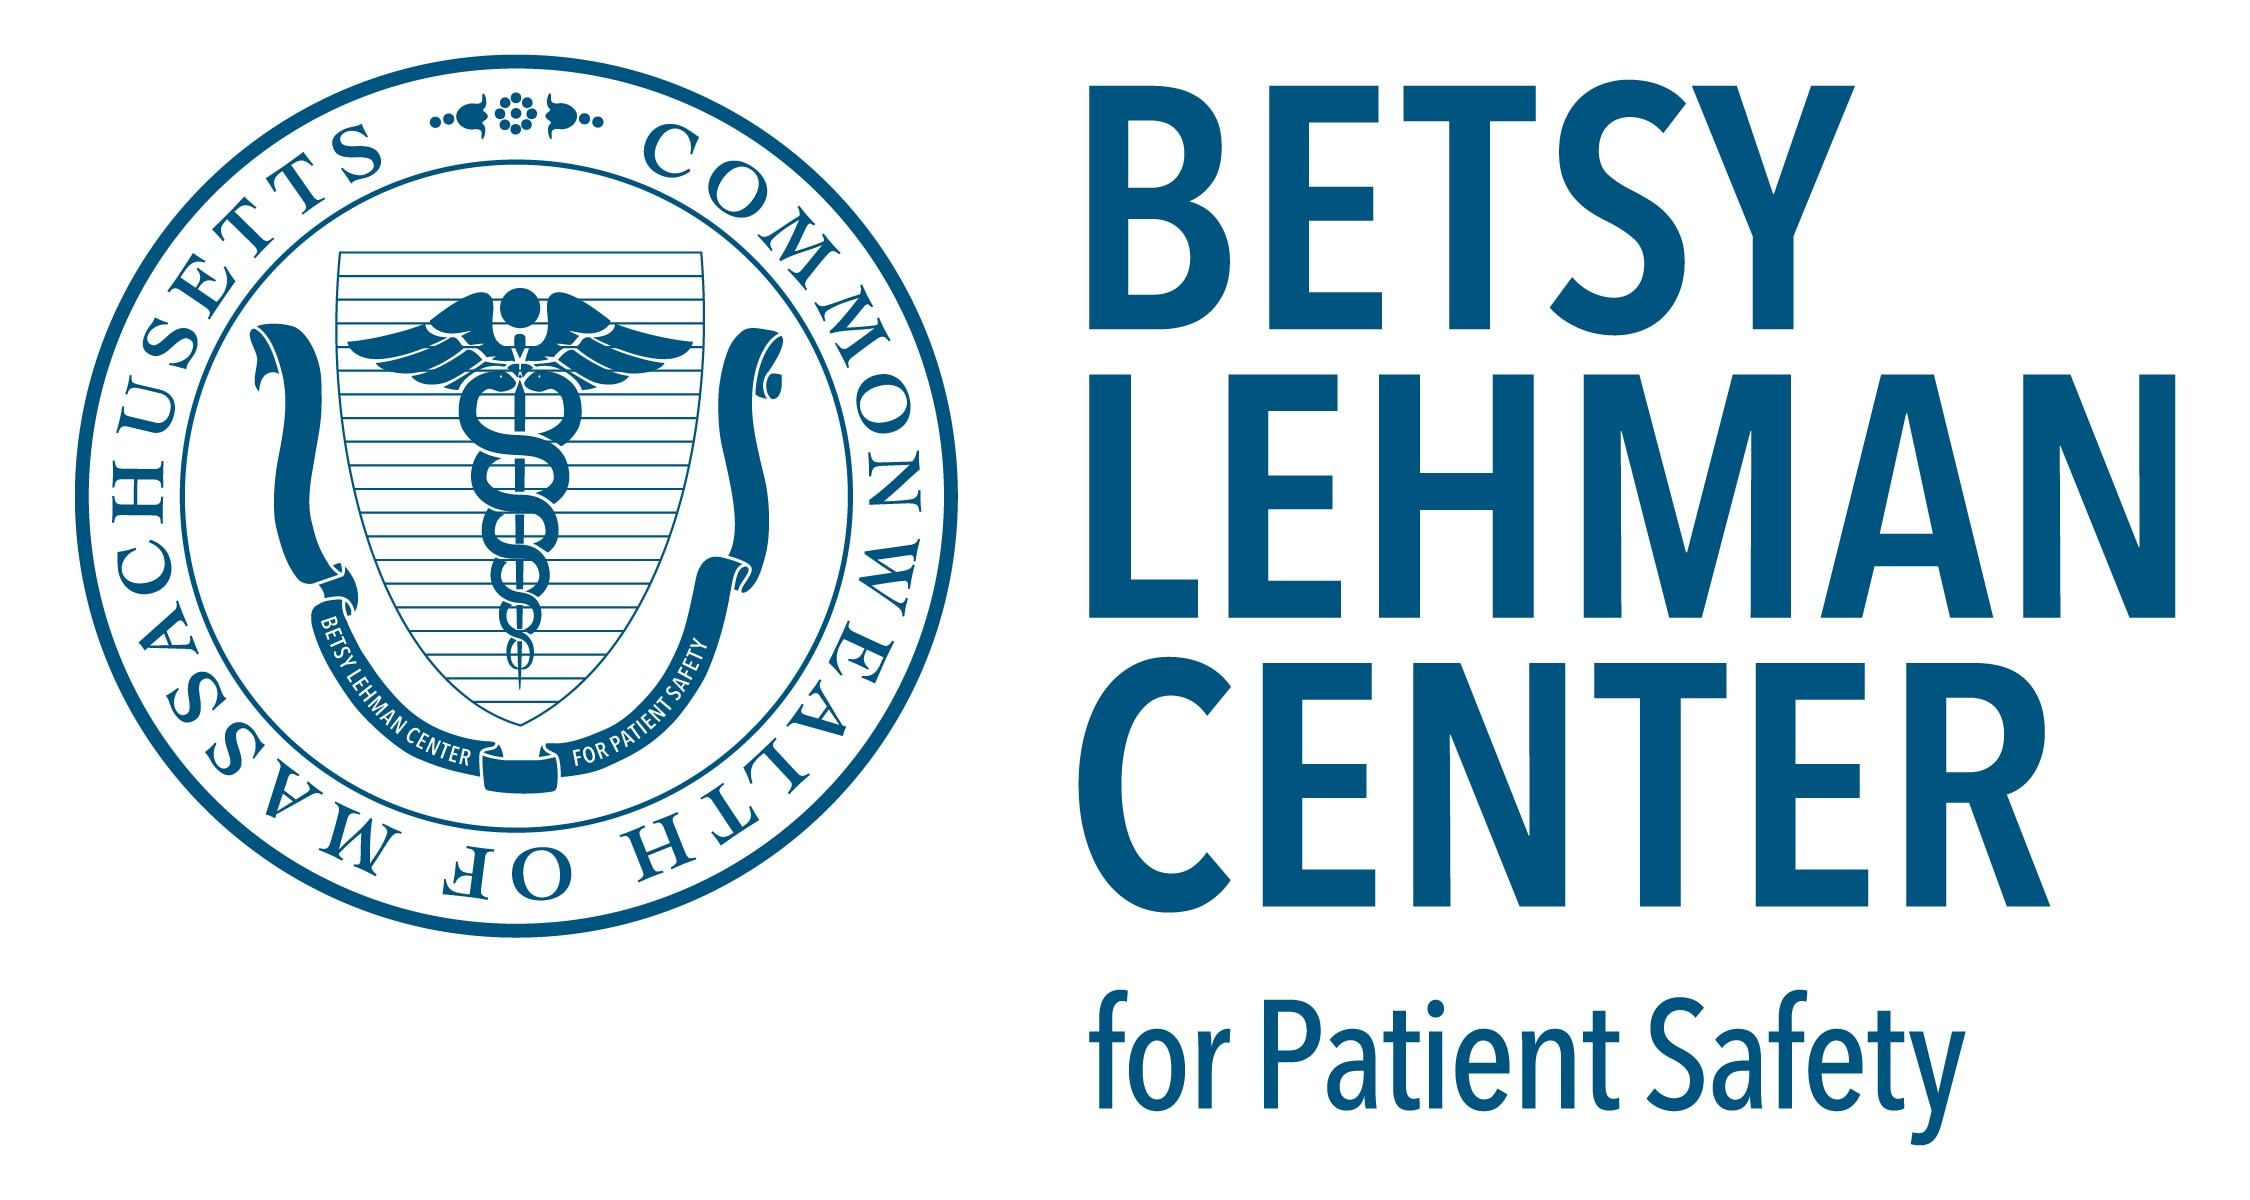 Betsy Lehman Center for Patient Safety